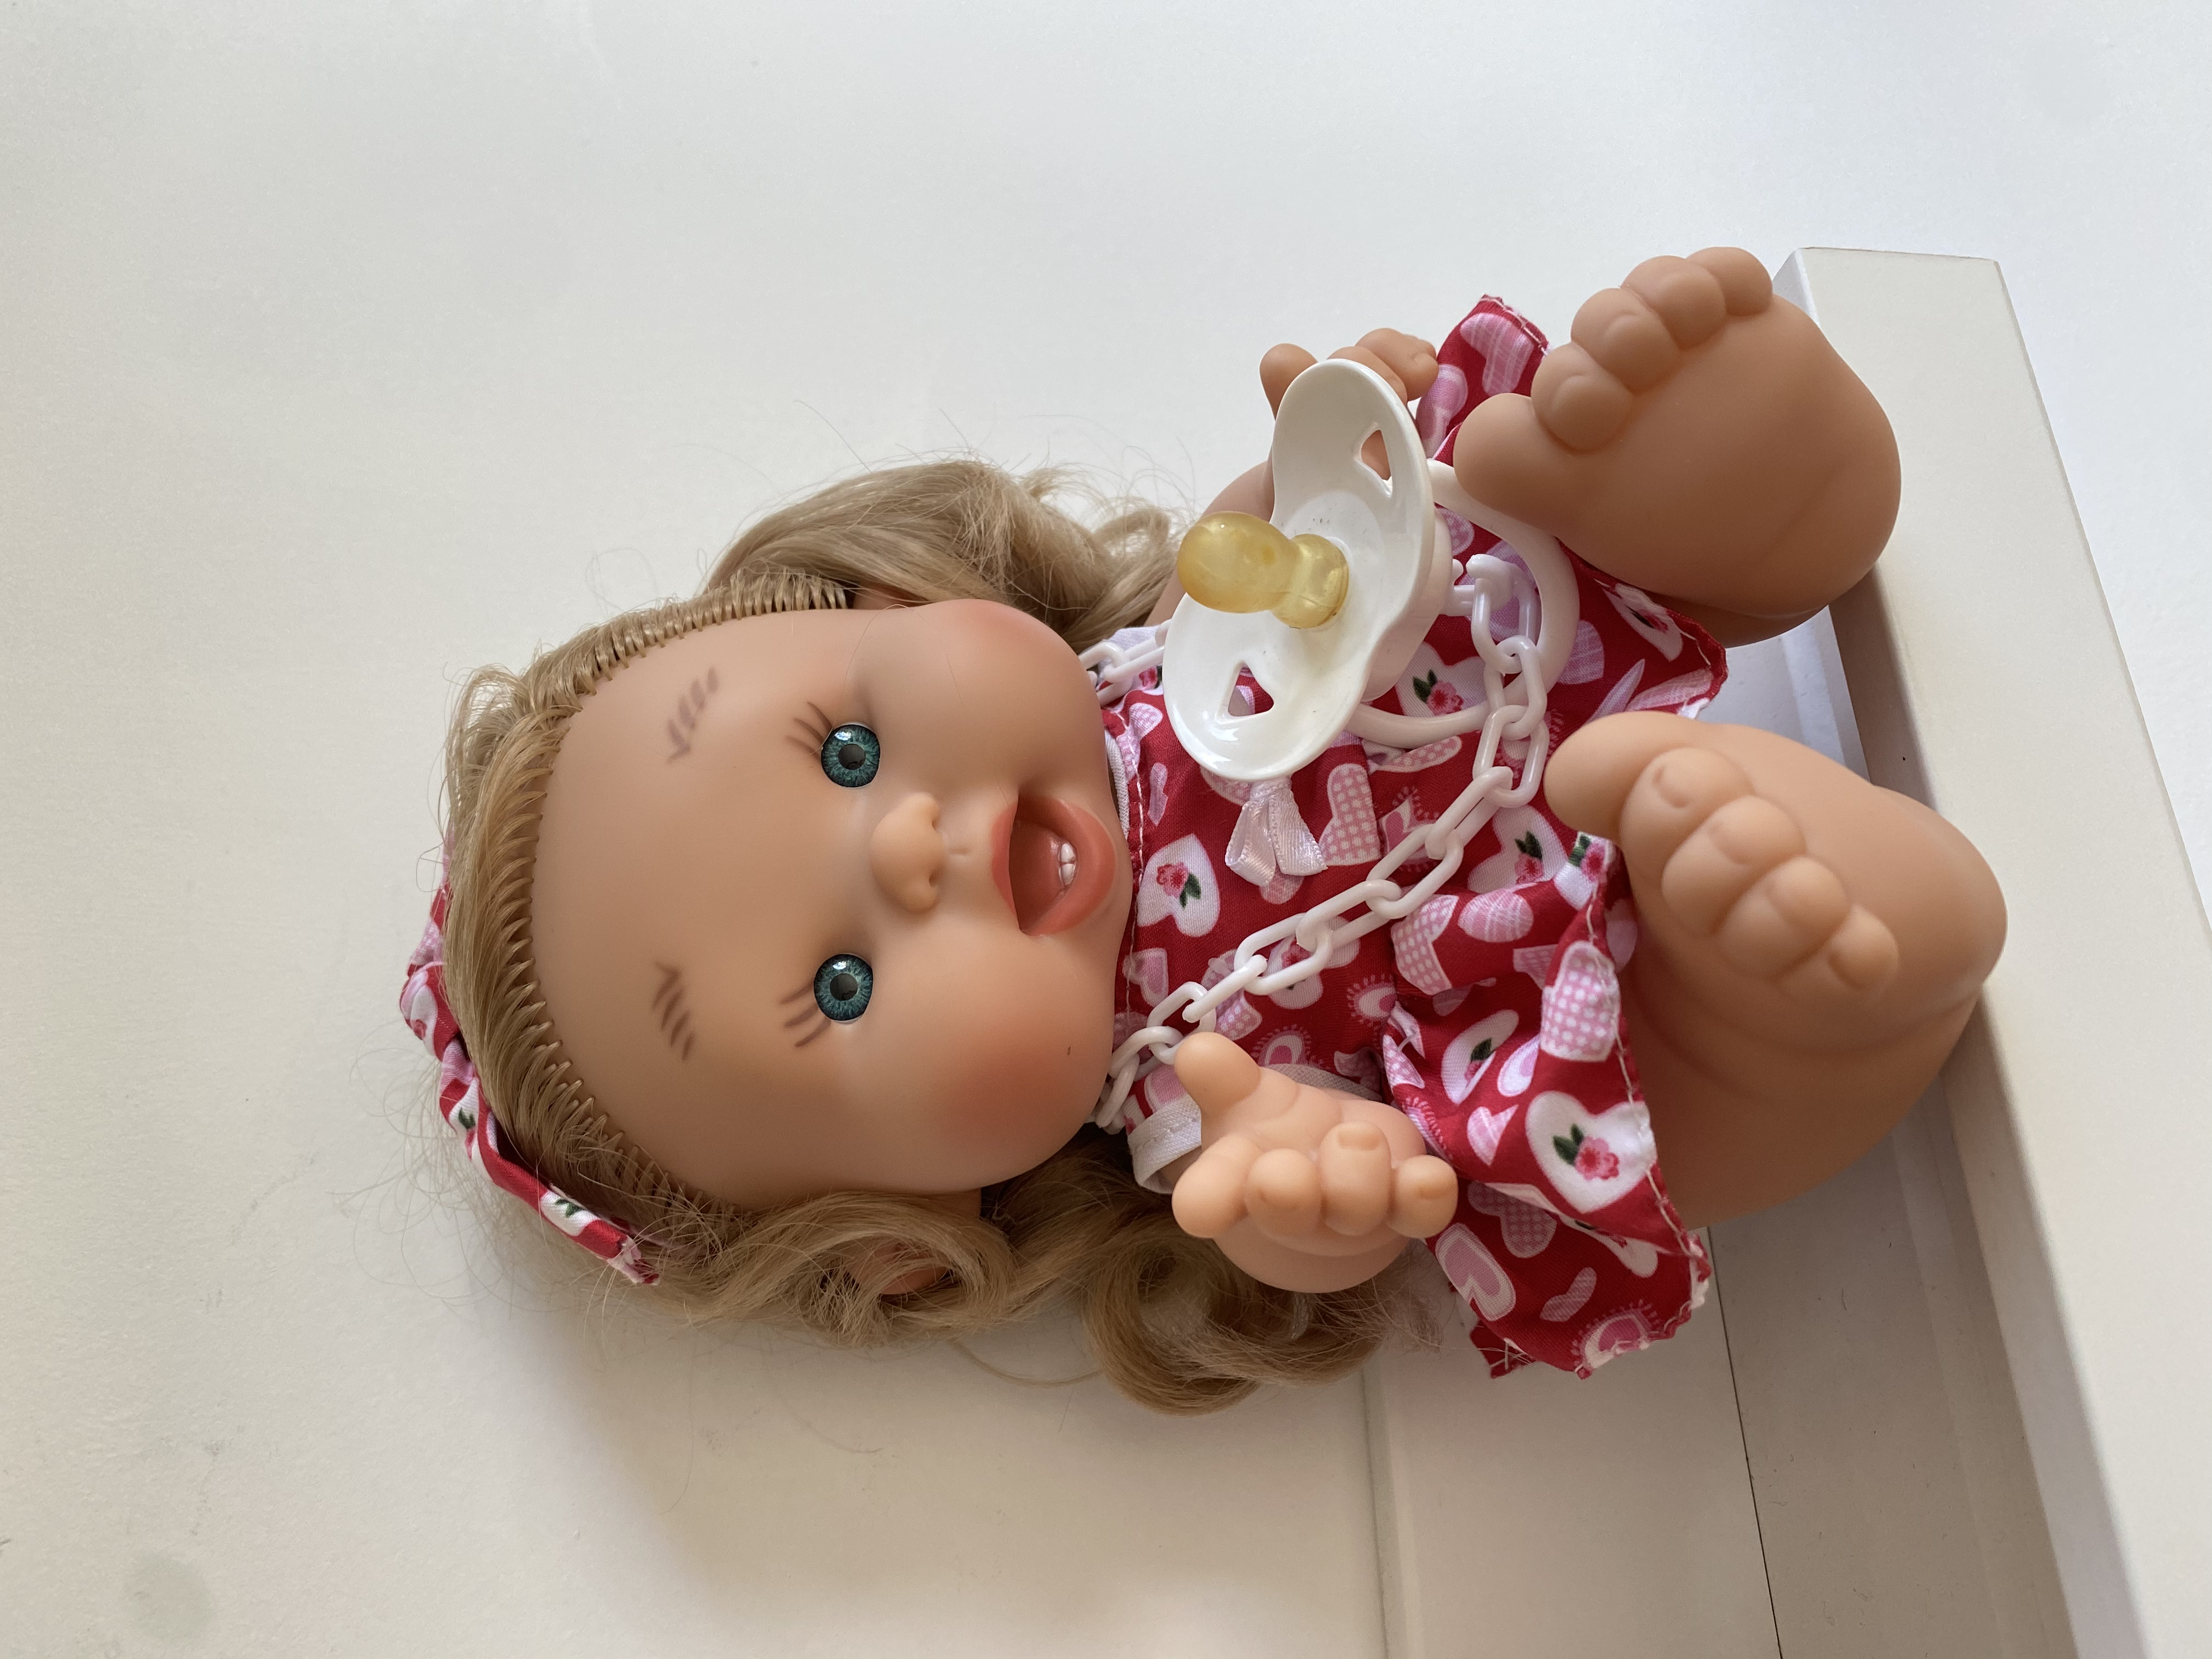 Cute little Kristy doll from spain